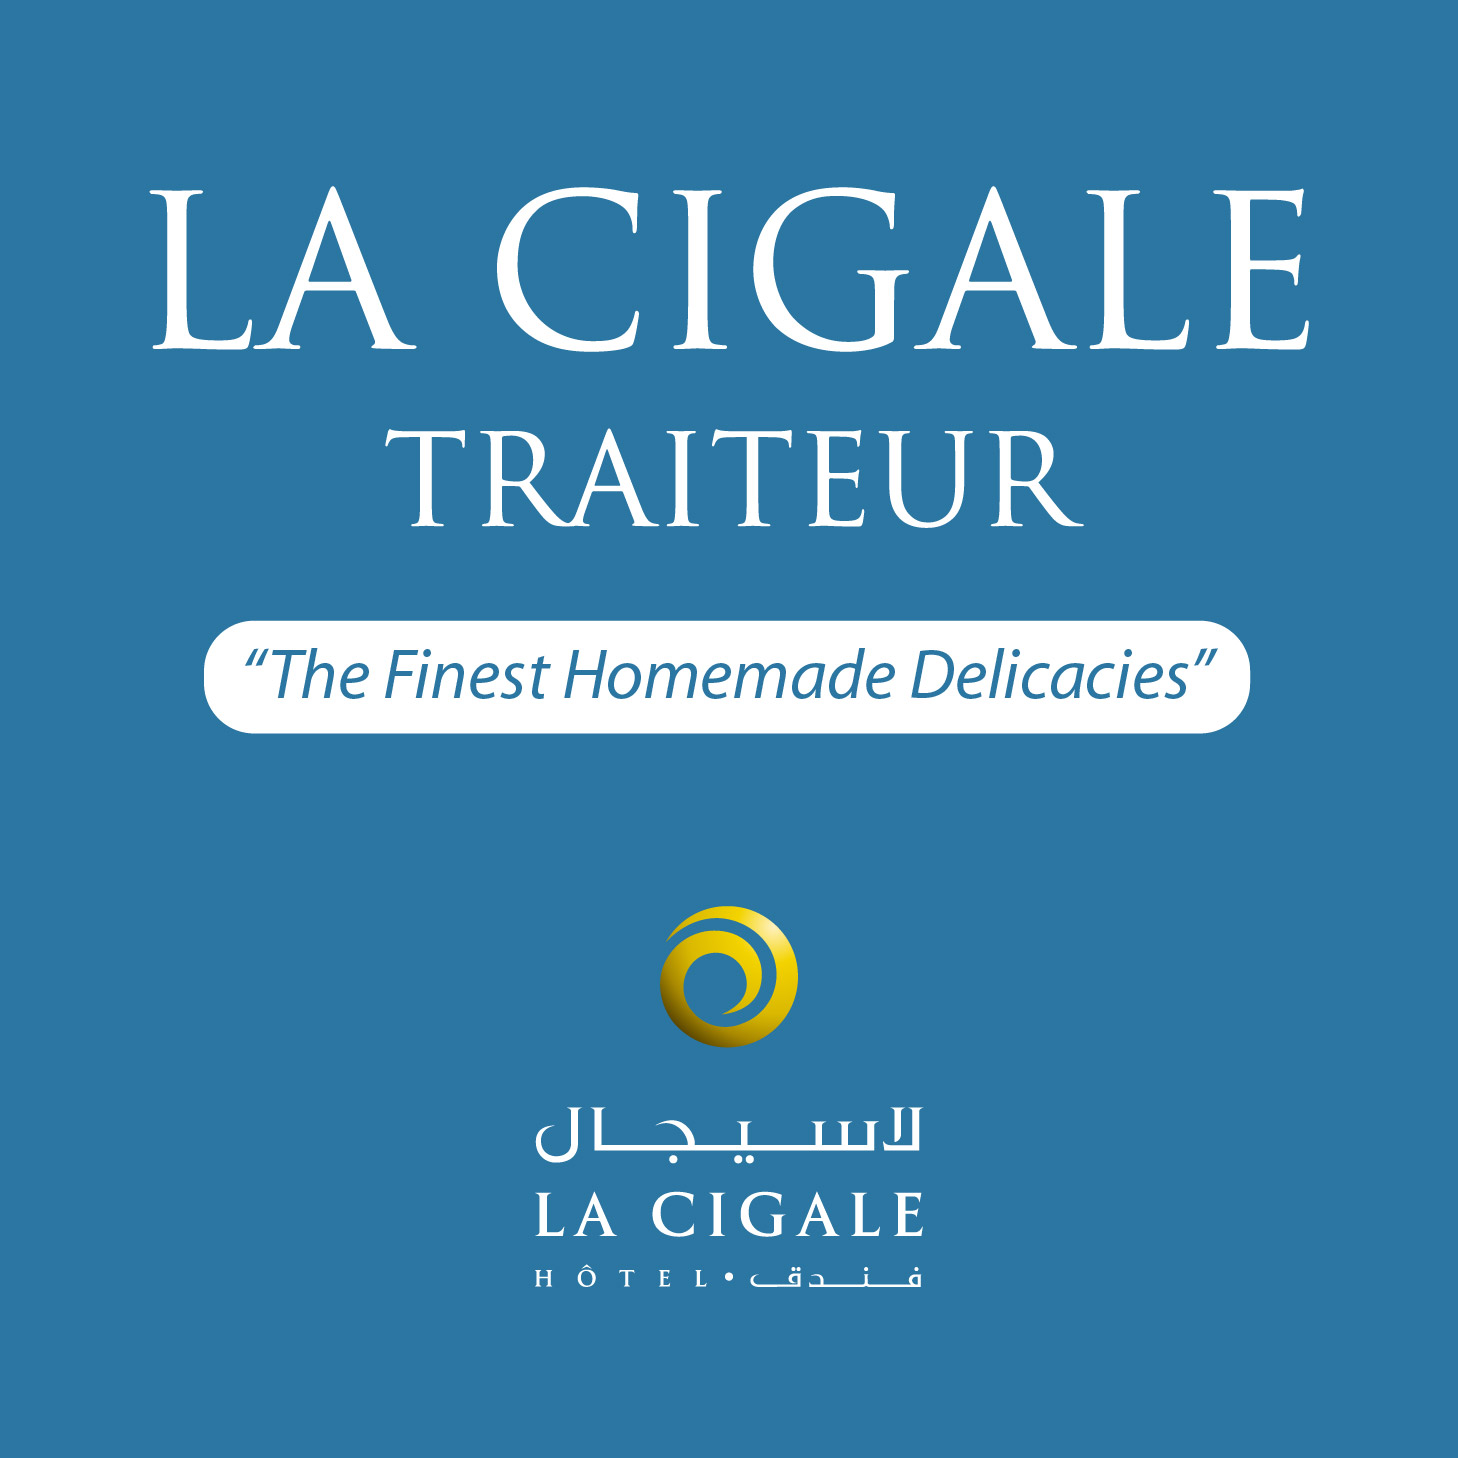 La Cigale Traiteur